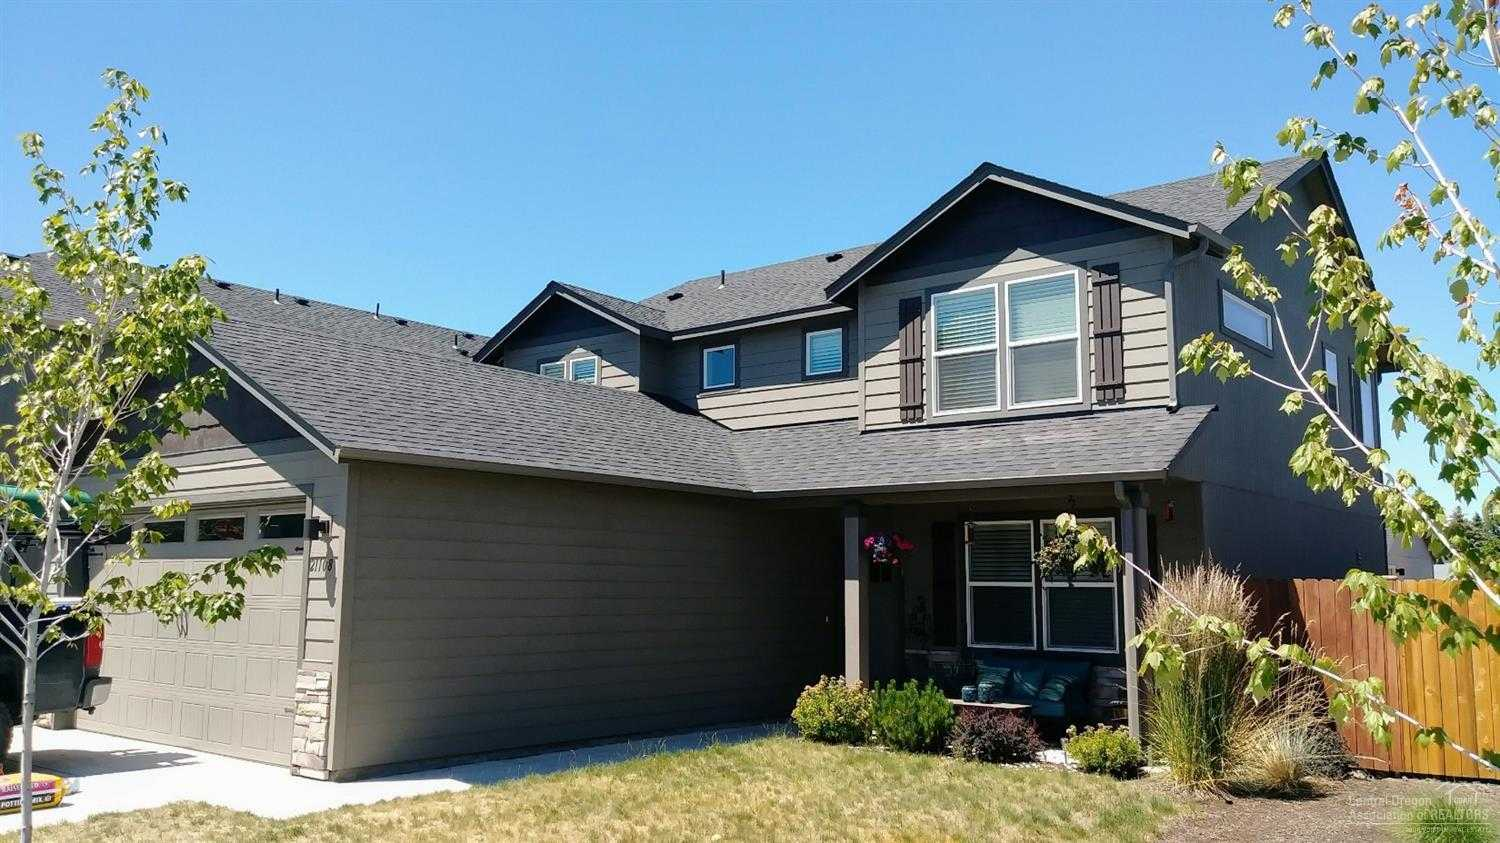 $394,900 - 4Br/3Ba -  for Sale in Bend